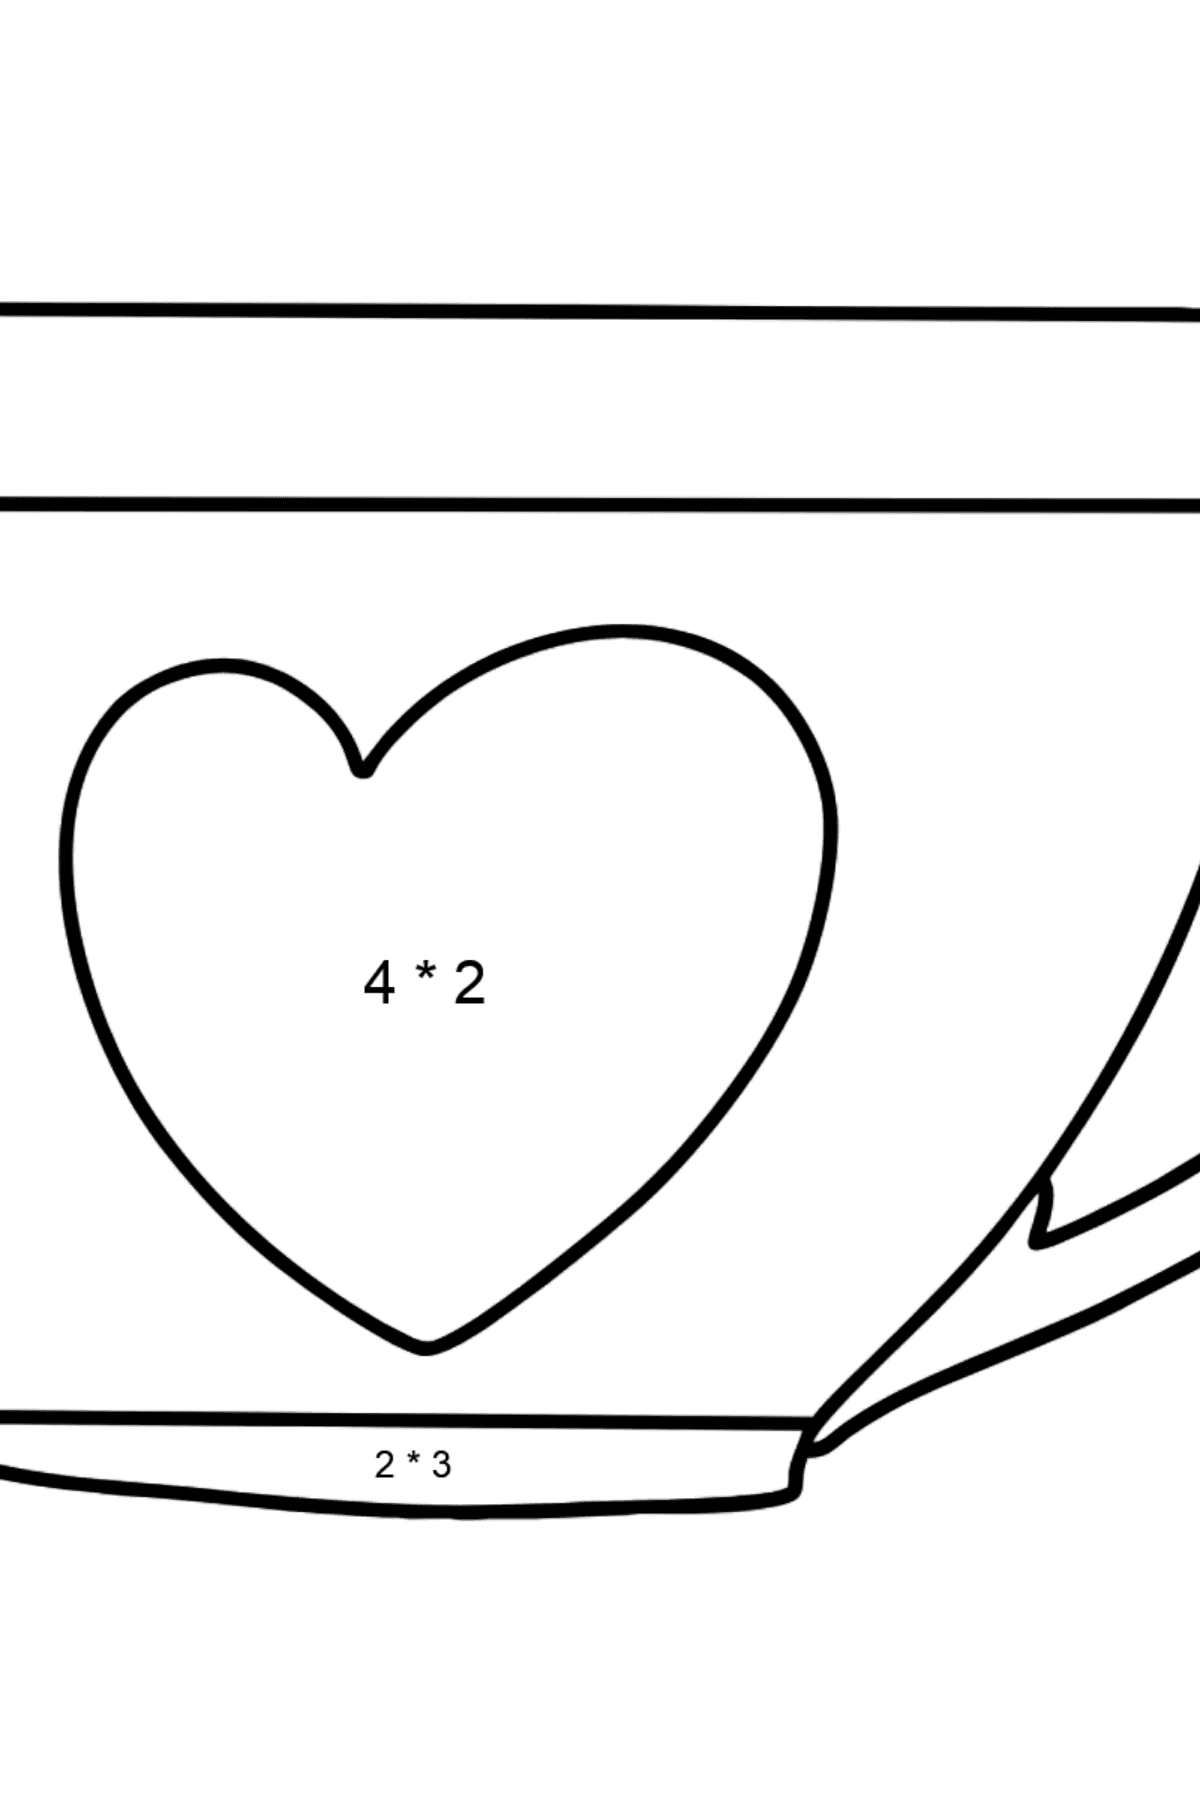 Cup coloring page - Math Coloring - Multiplication for Kids